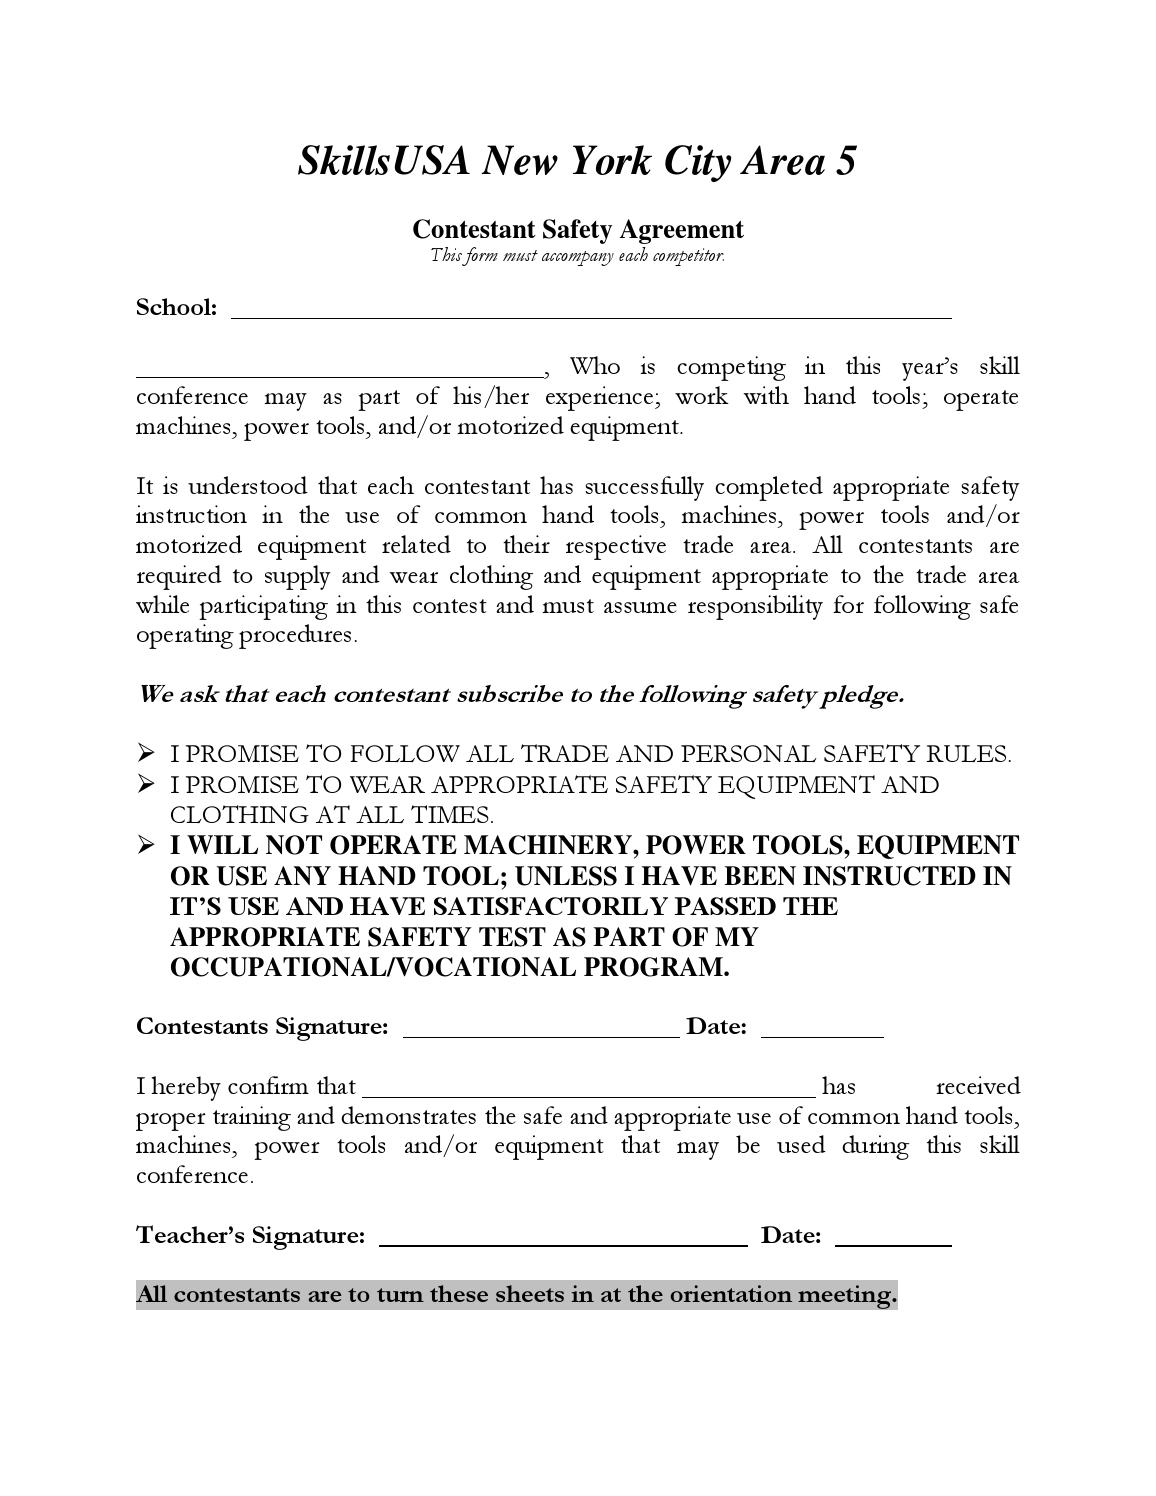 Contestant Safety Agreement Form By Jessie Kalloo Issuu